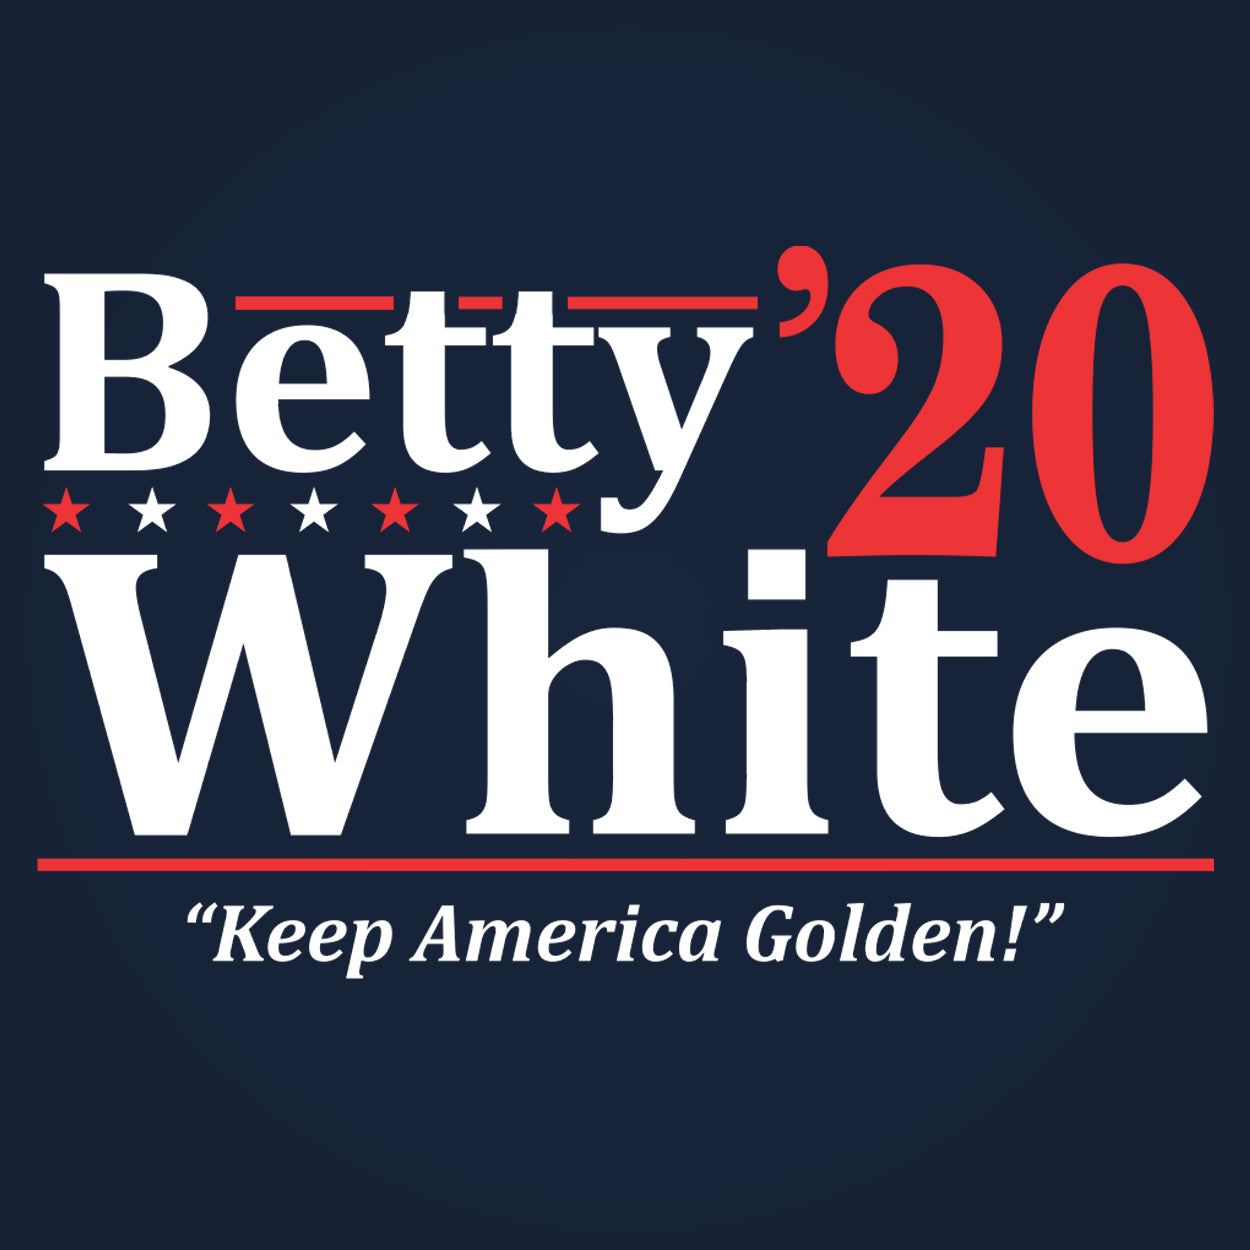 Betty White 2024 ELECTION